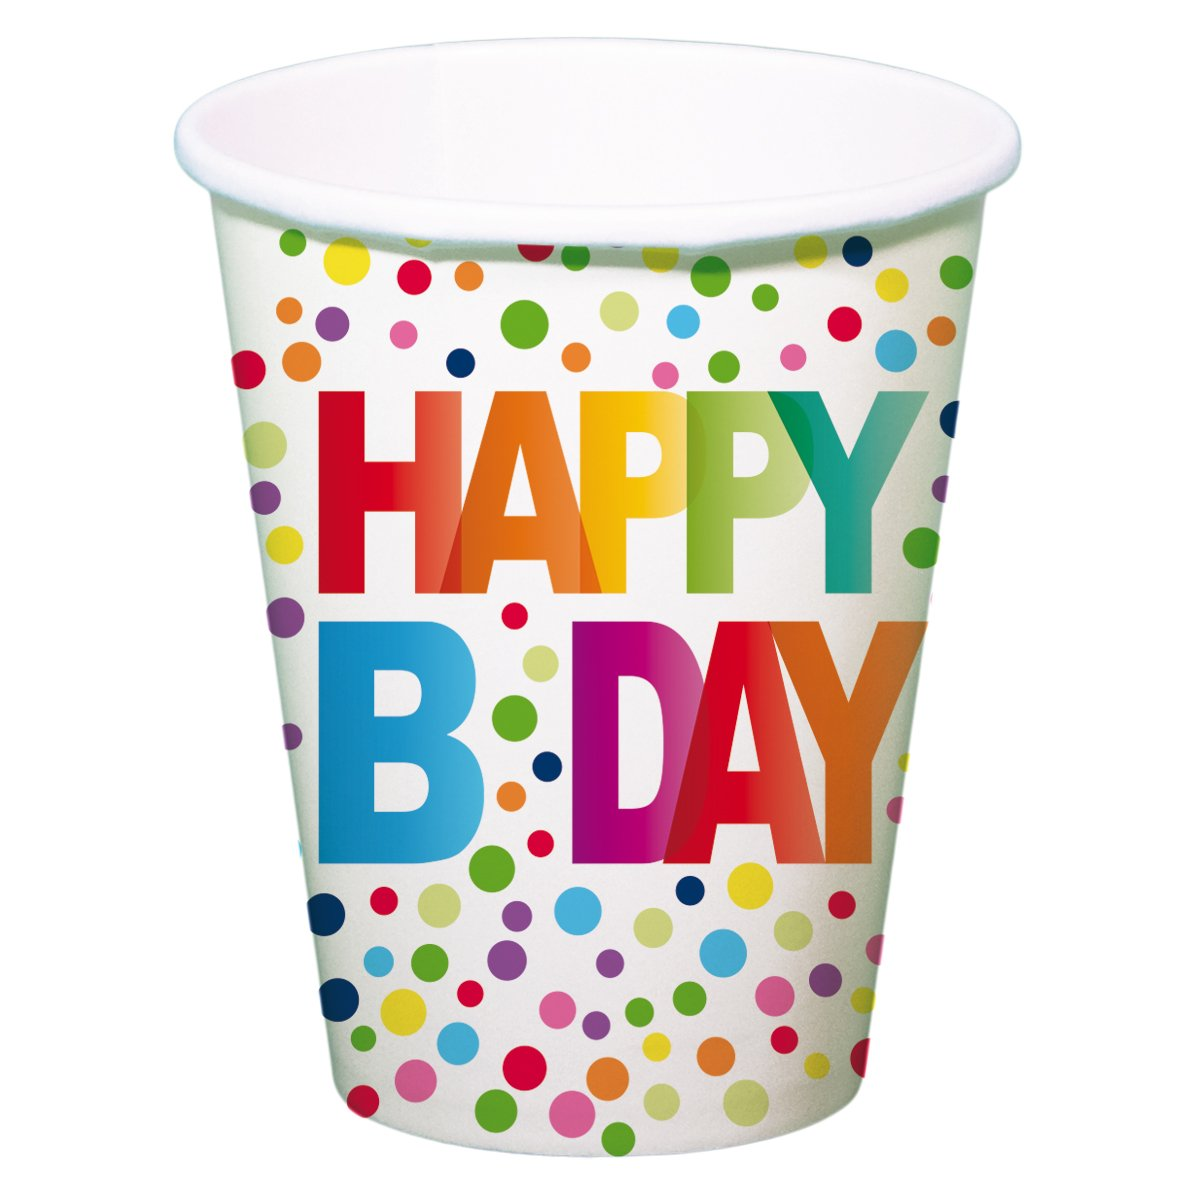 Festone multicolore - serie: Happy B Day - decorazione compleanno Folat